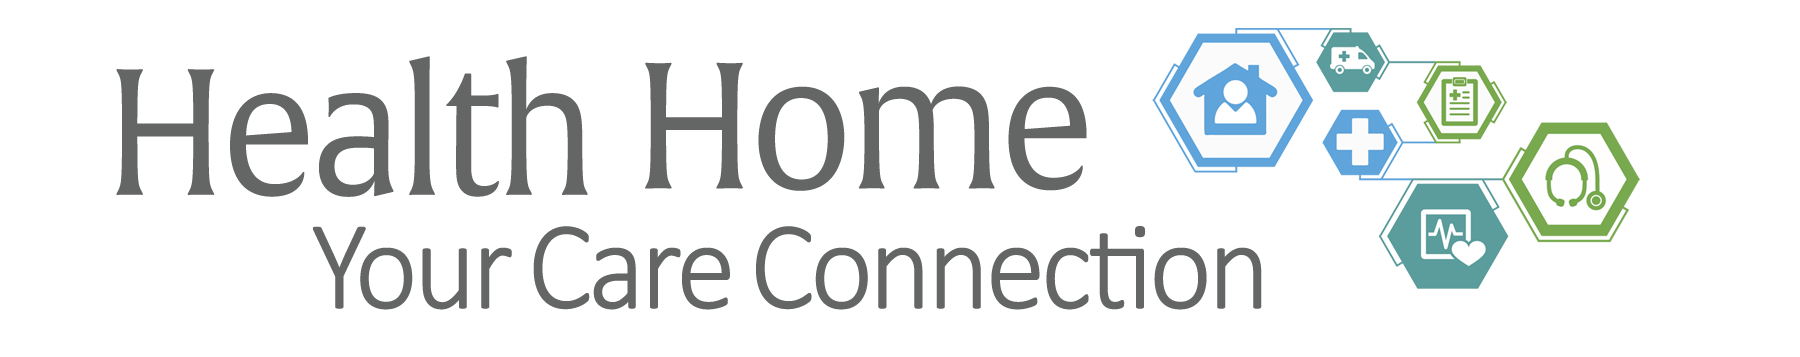 Health home logo with graphics